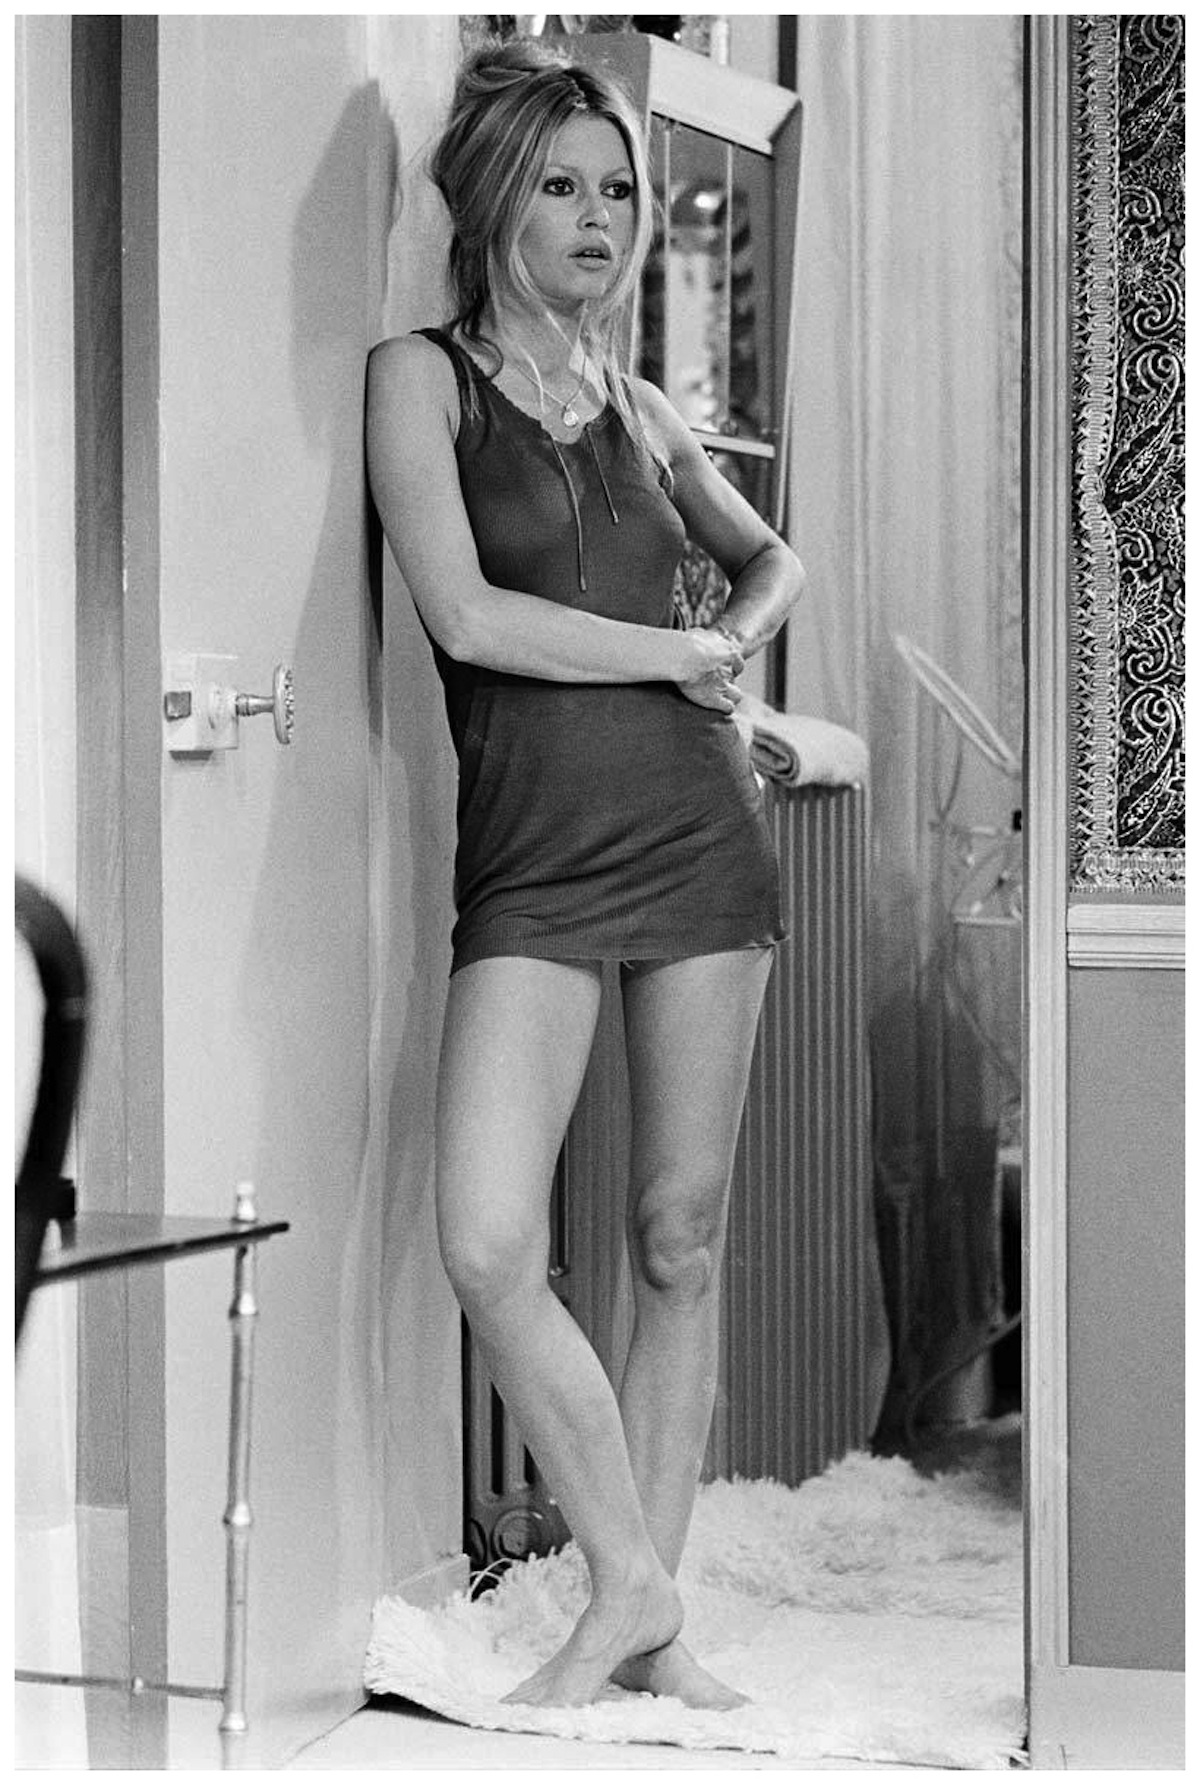 brigitte-bardot-getty-archive-terry-oneill-1968